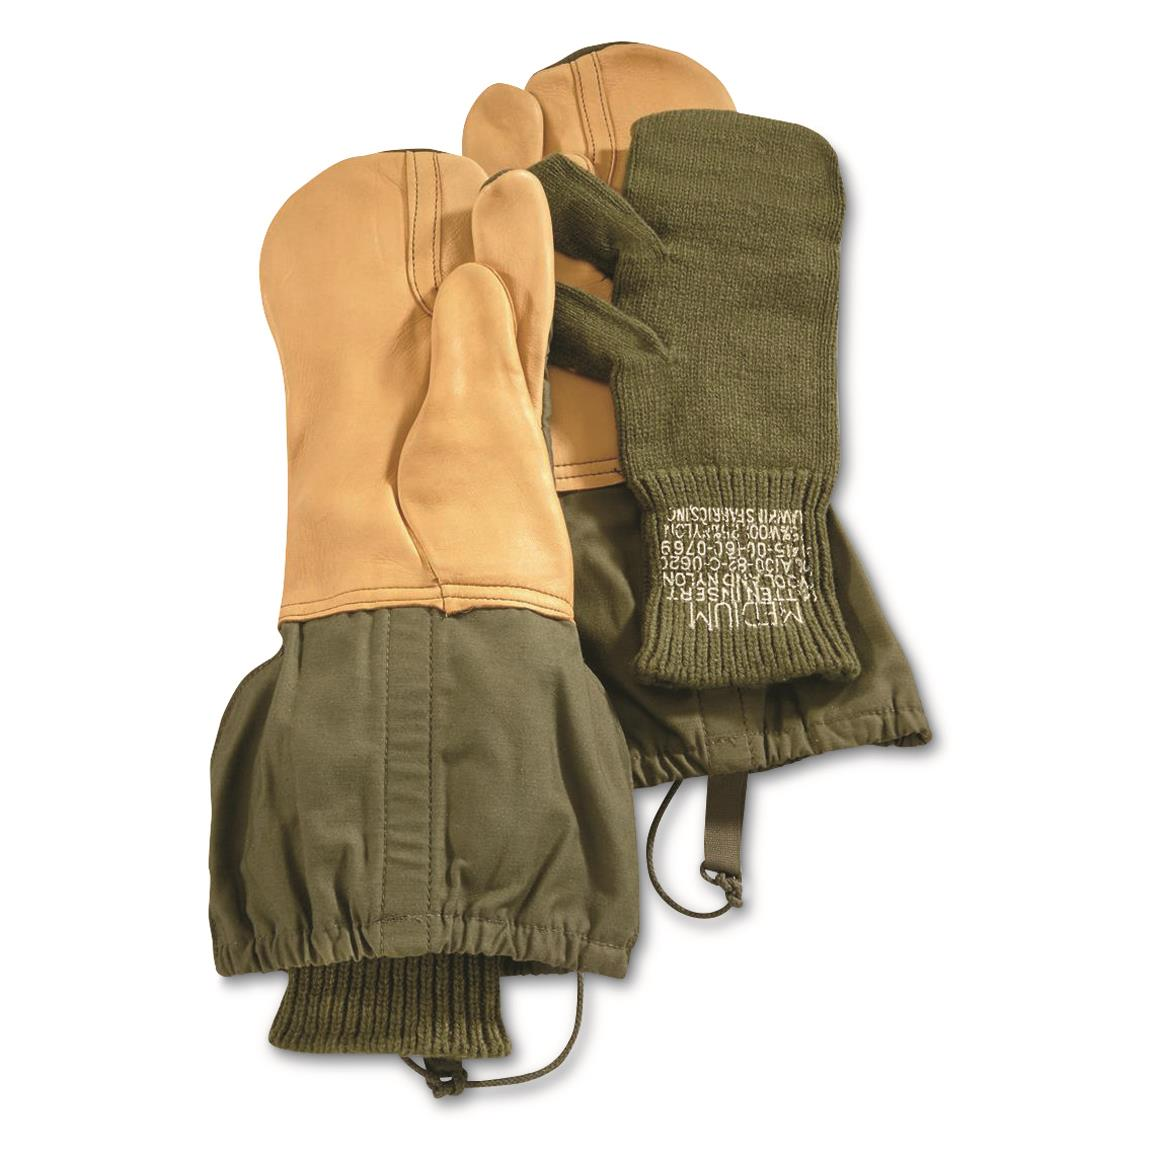 U.S. Military Surplus M1965 Trigger Mittens, with Wool Liners, Like New, Olive Drab